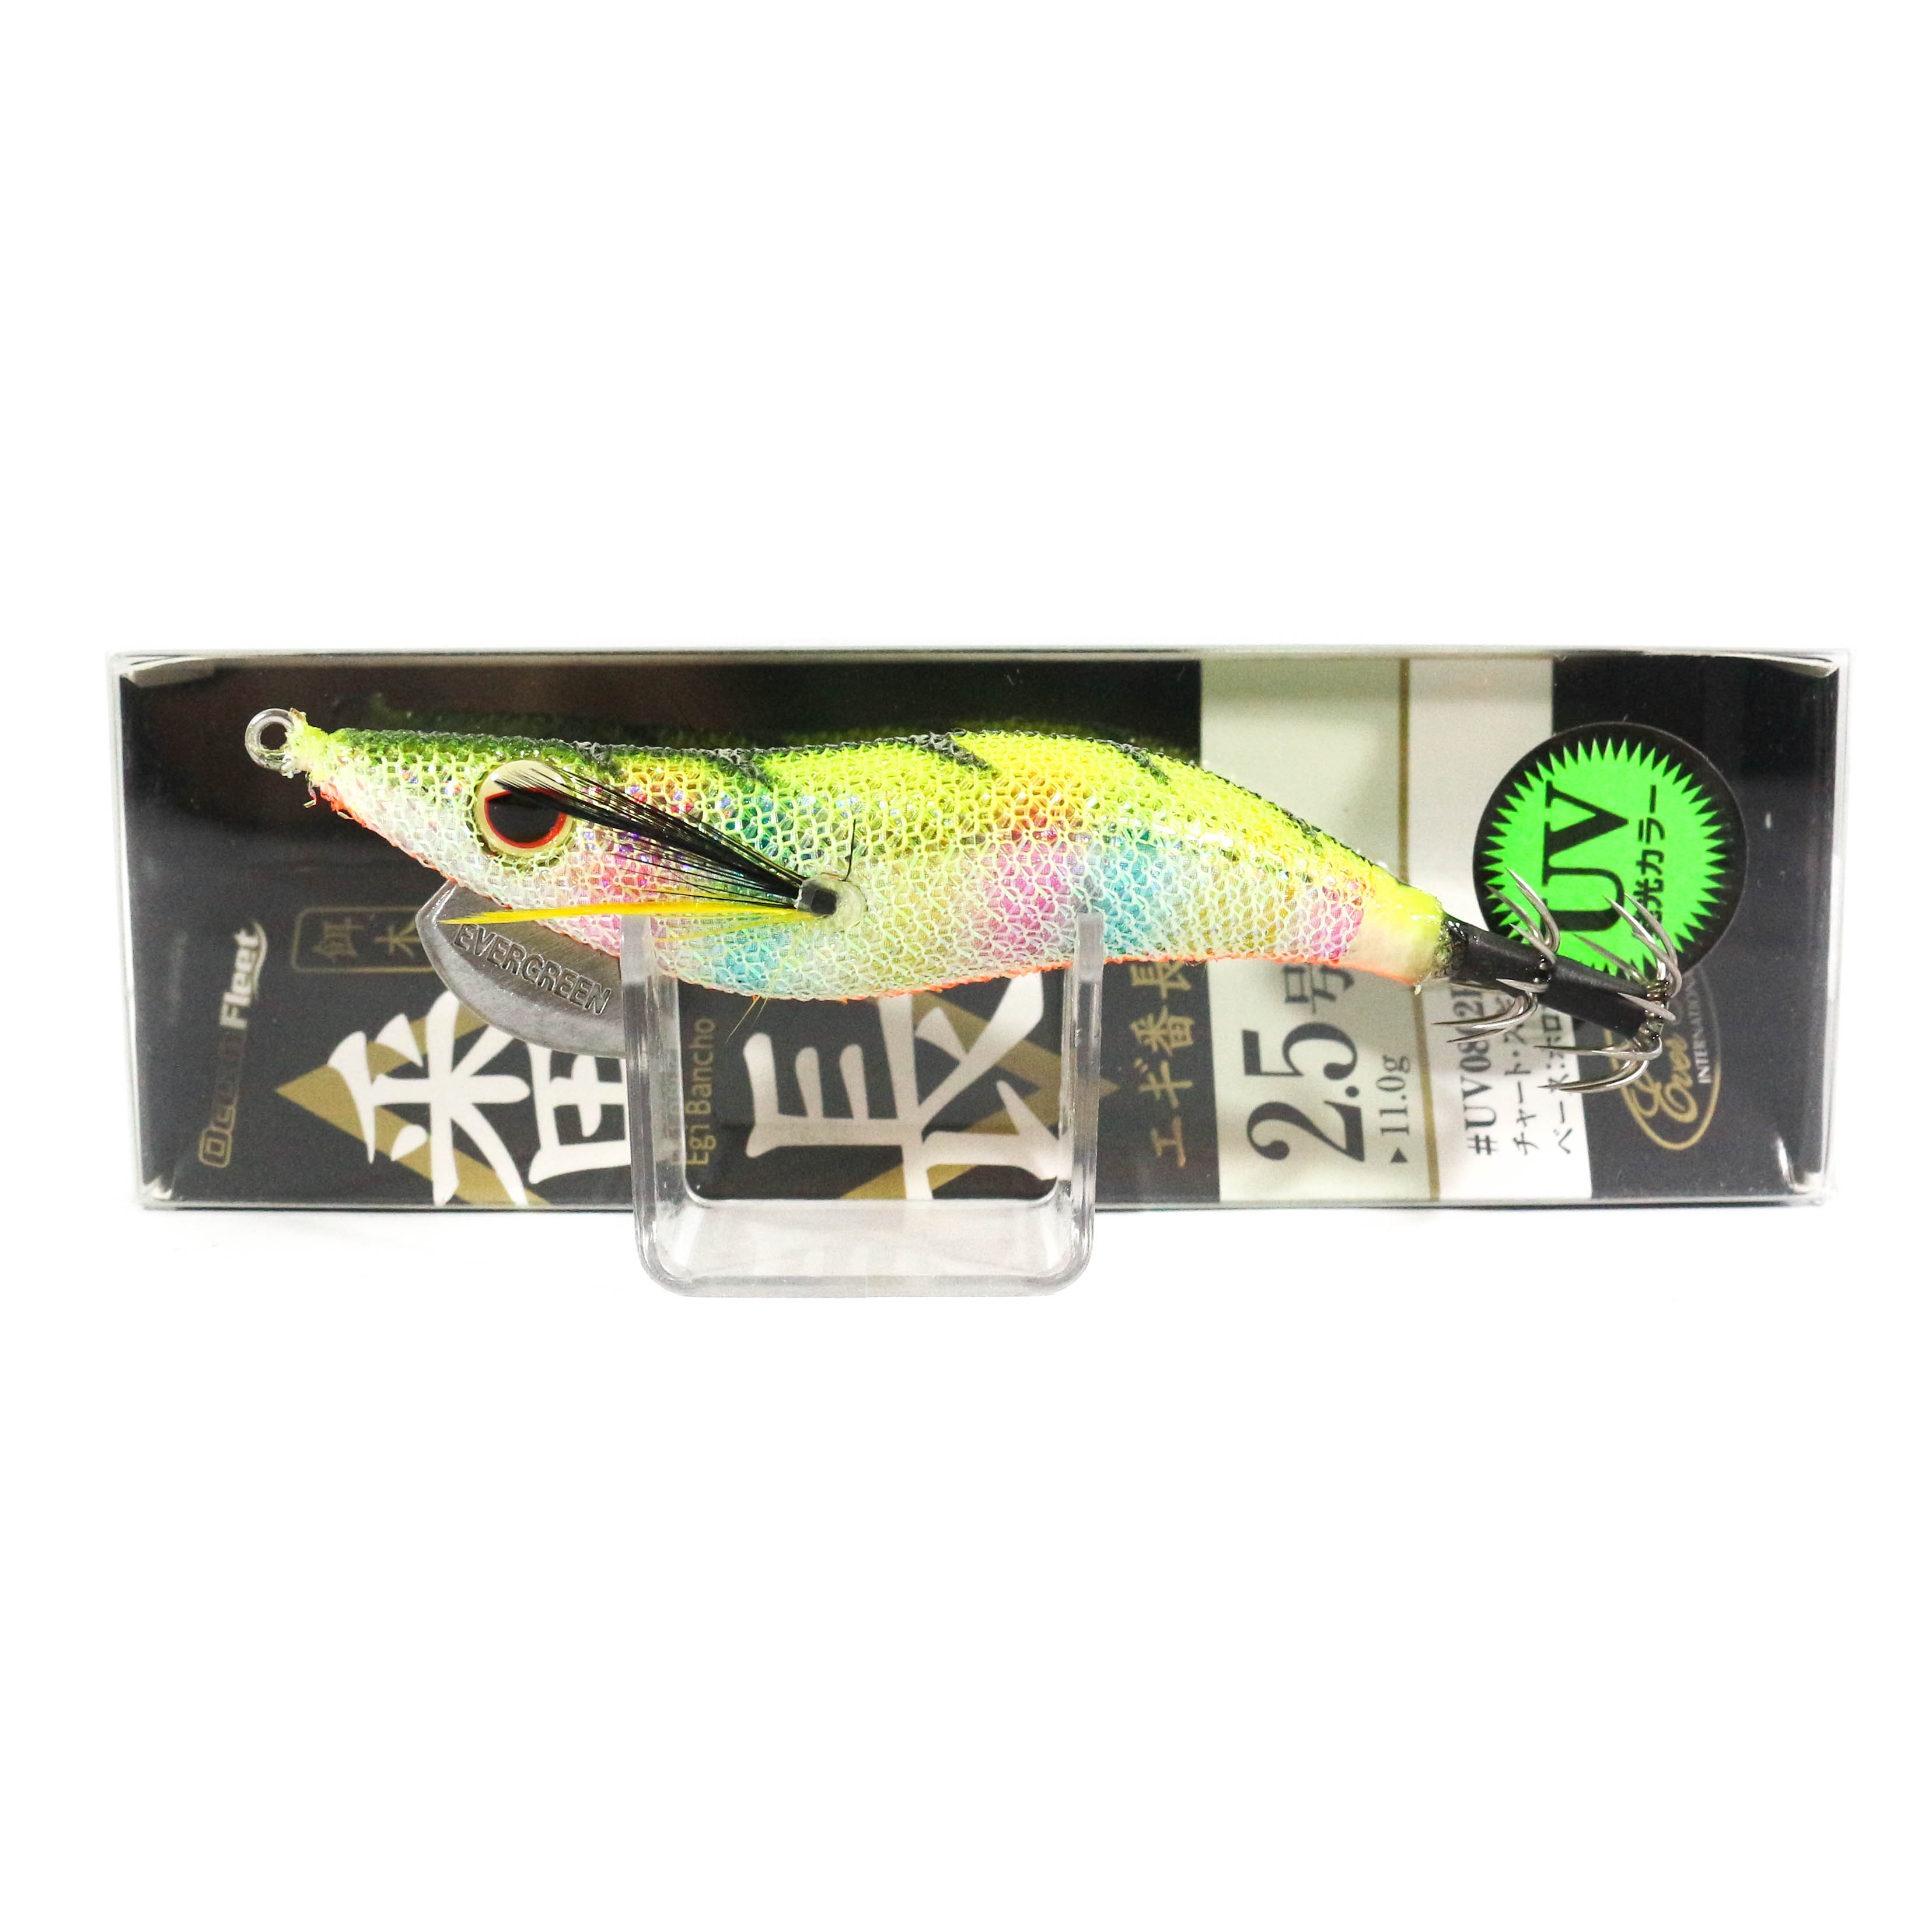 Evergreen Ocean Fleet Custom Squid Jig Lure 2.5 0802HM (6634)